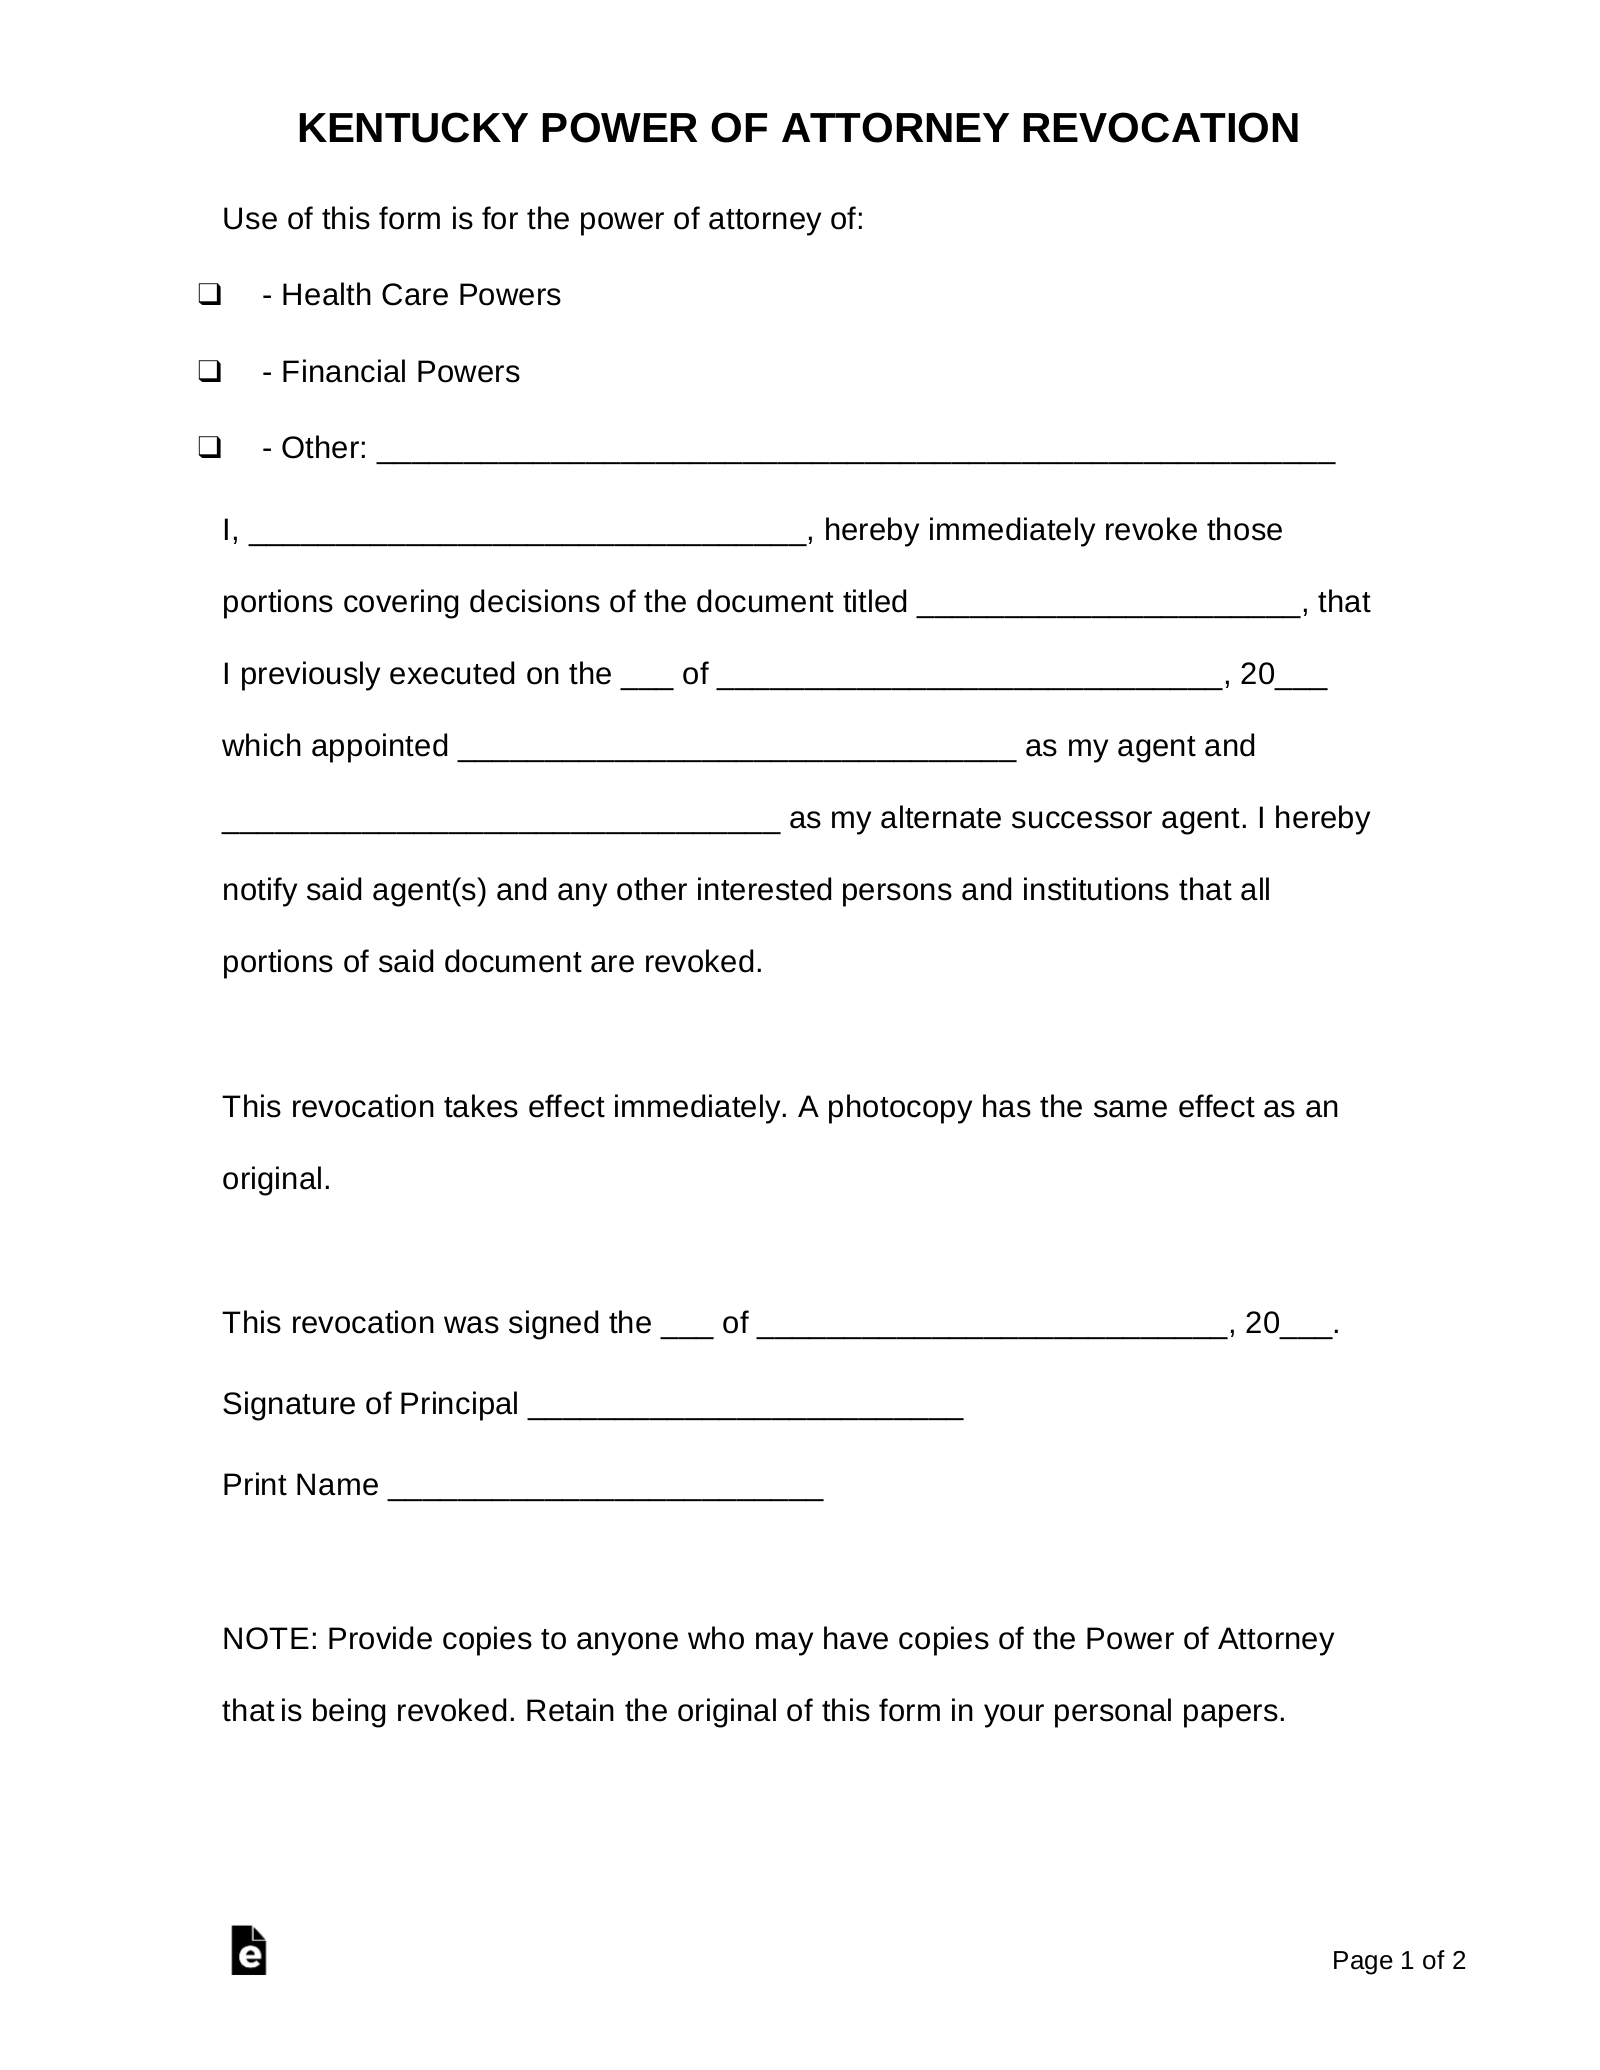 power of attorney form ky  Free Kentucky Power of Attorney Revocation Form - PDF | Word ...